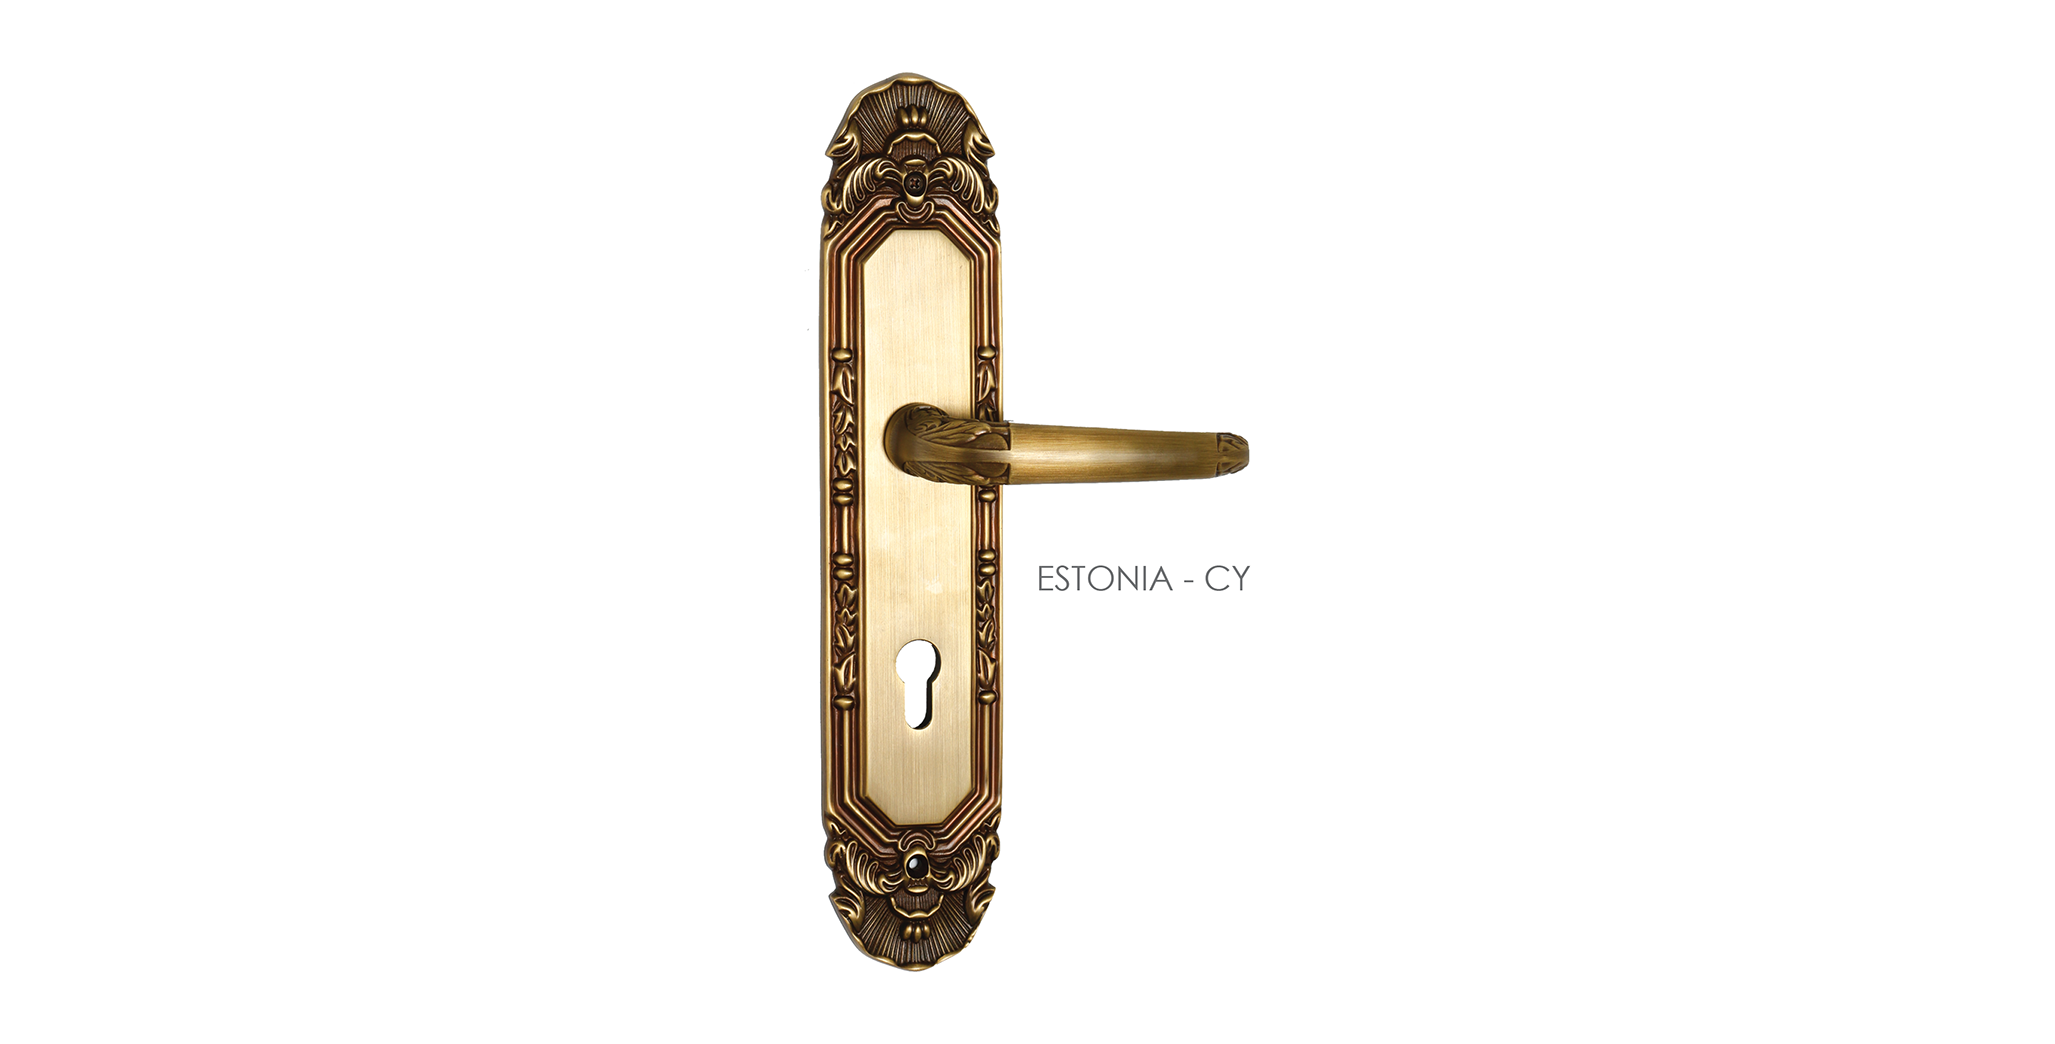 Brass Mortise Door Handle On Plate For Hotels